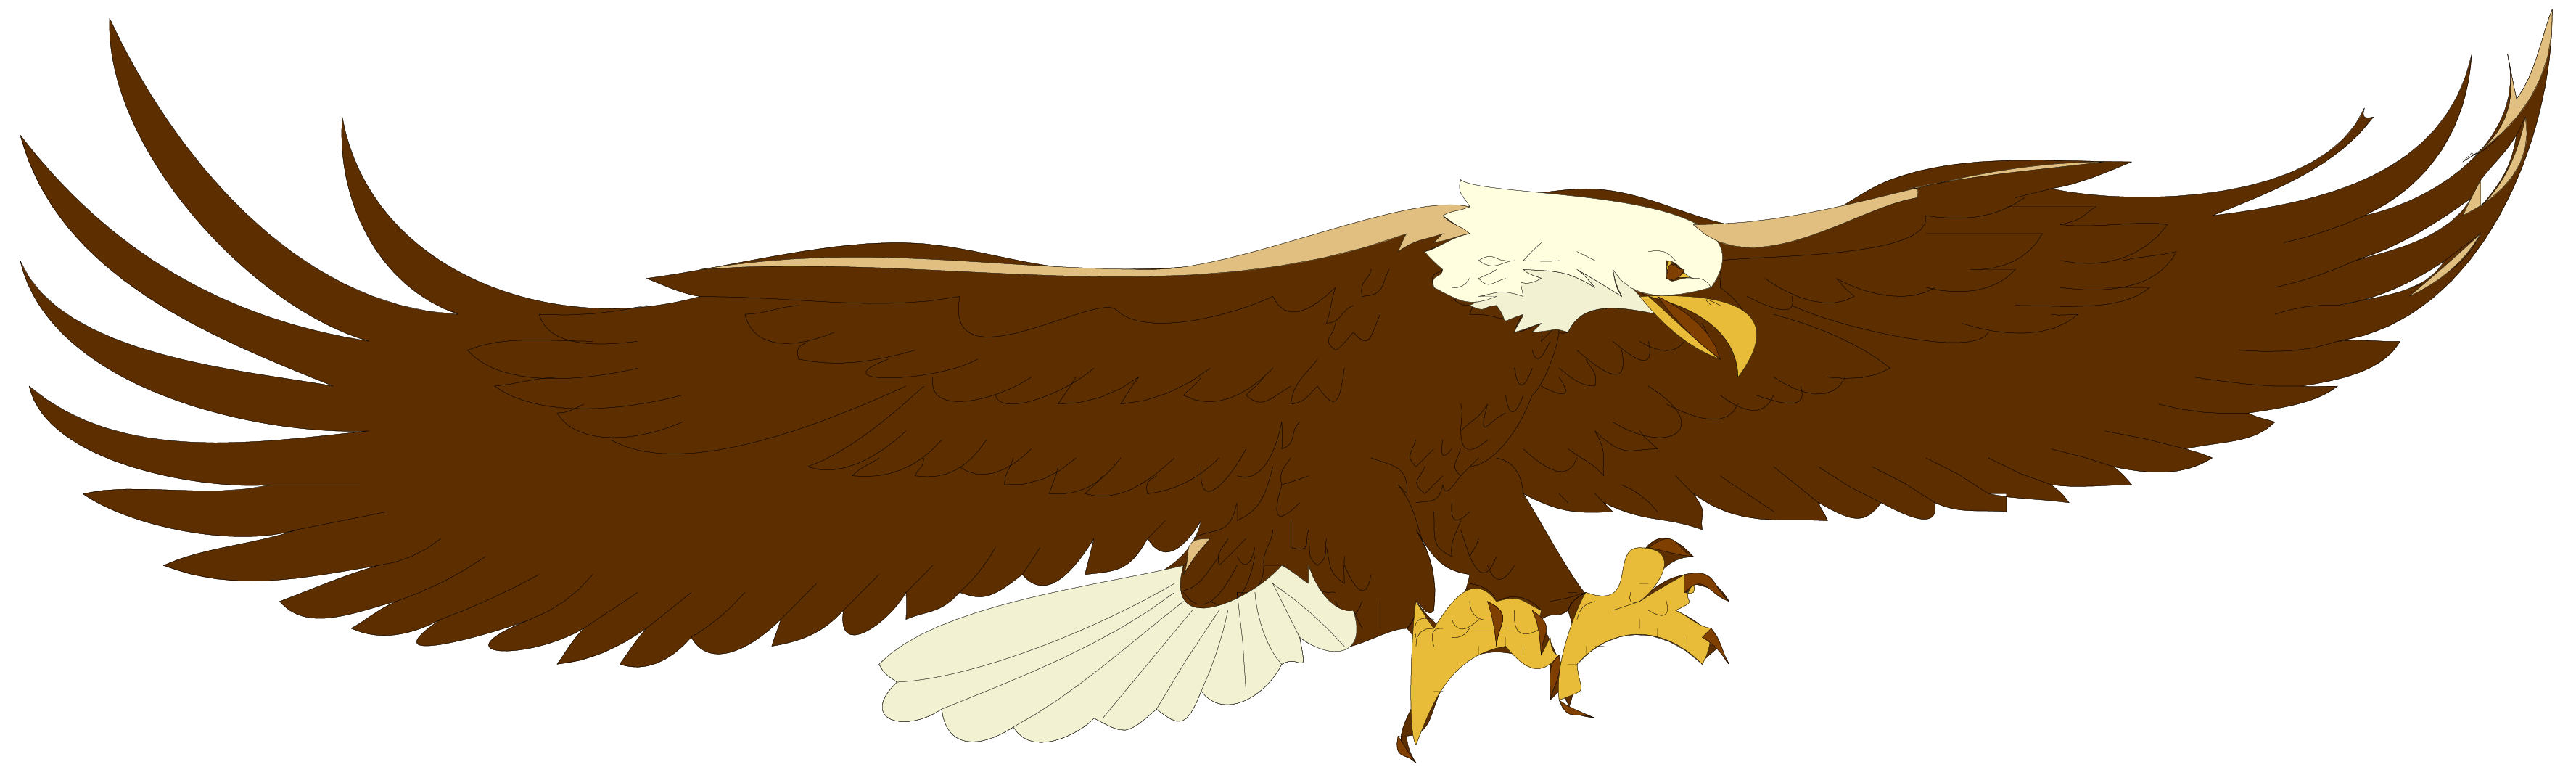 Bald eagle clipart logo png picture library download Eagle Clipart - Clipart Kid picture library download